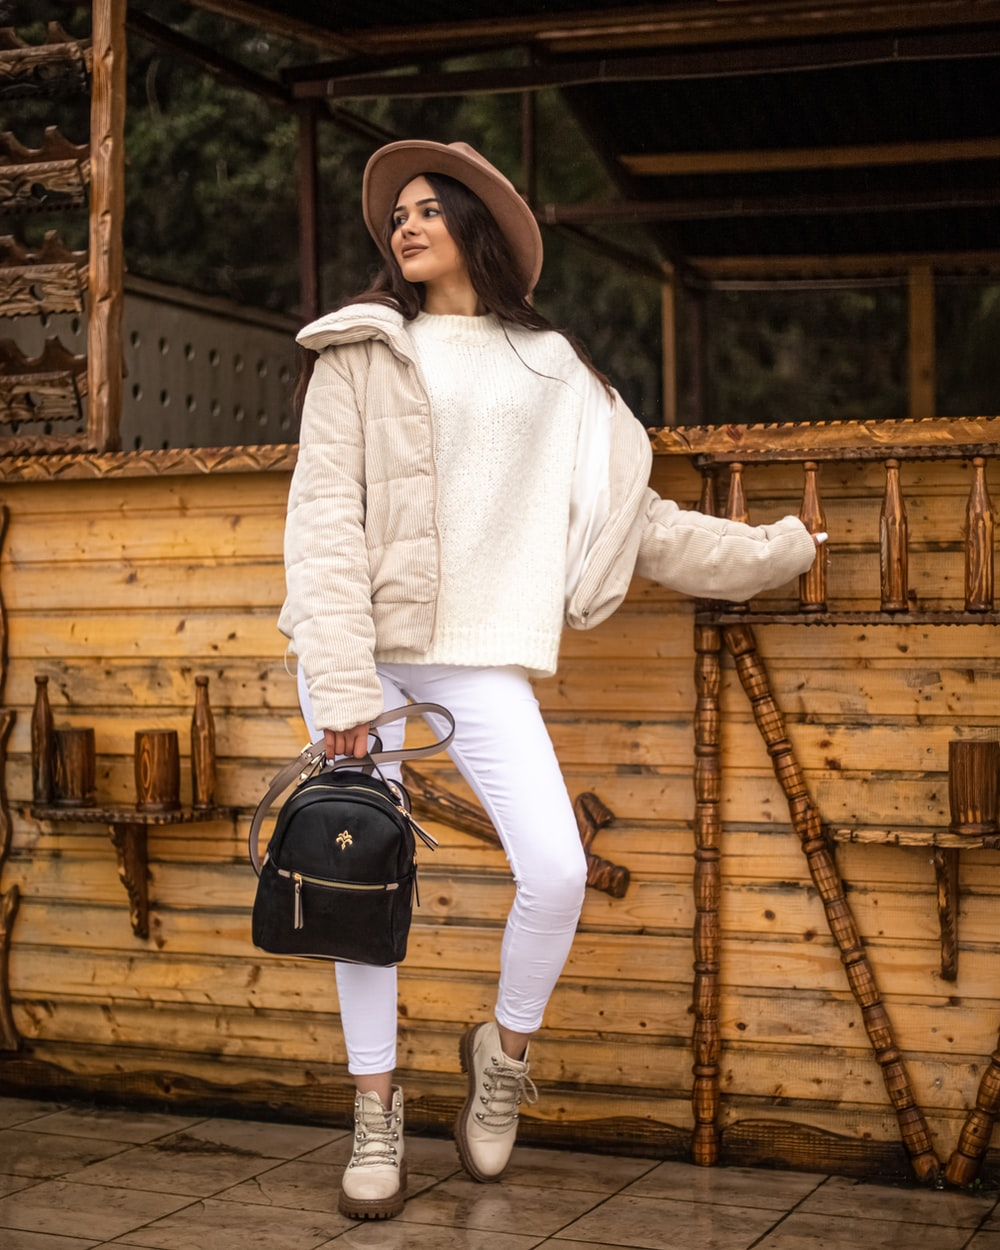 woman in white long sleeve shirt and brown pants holding black and gray backpack